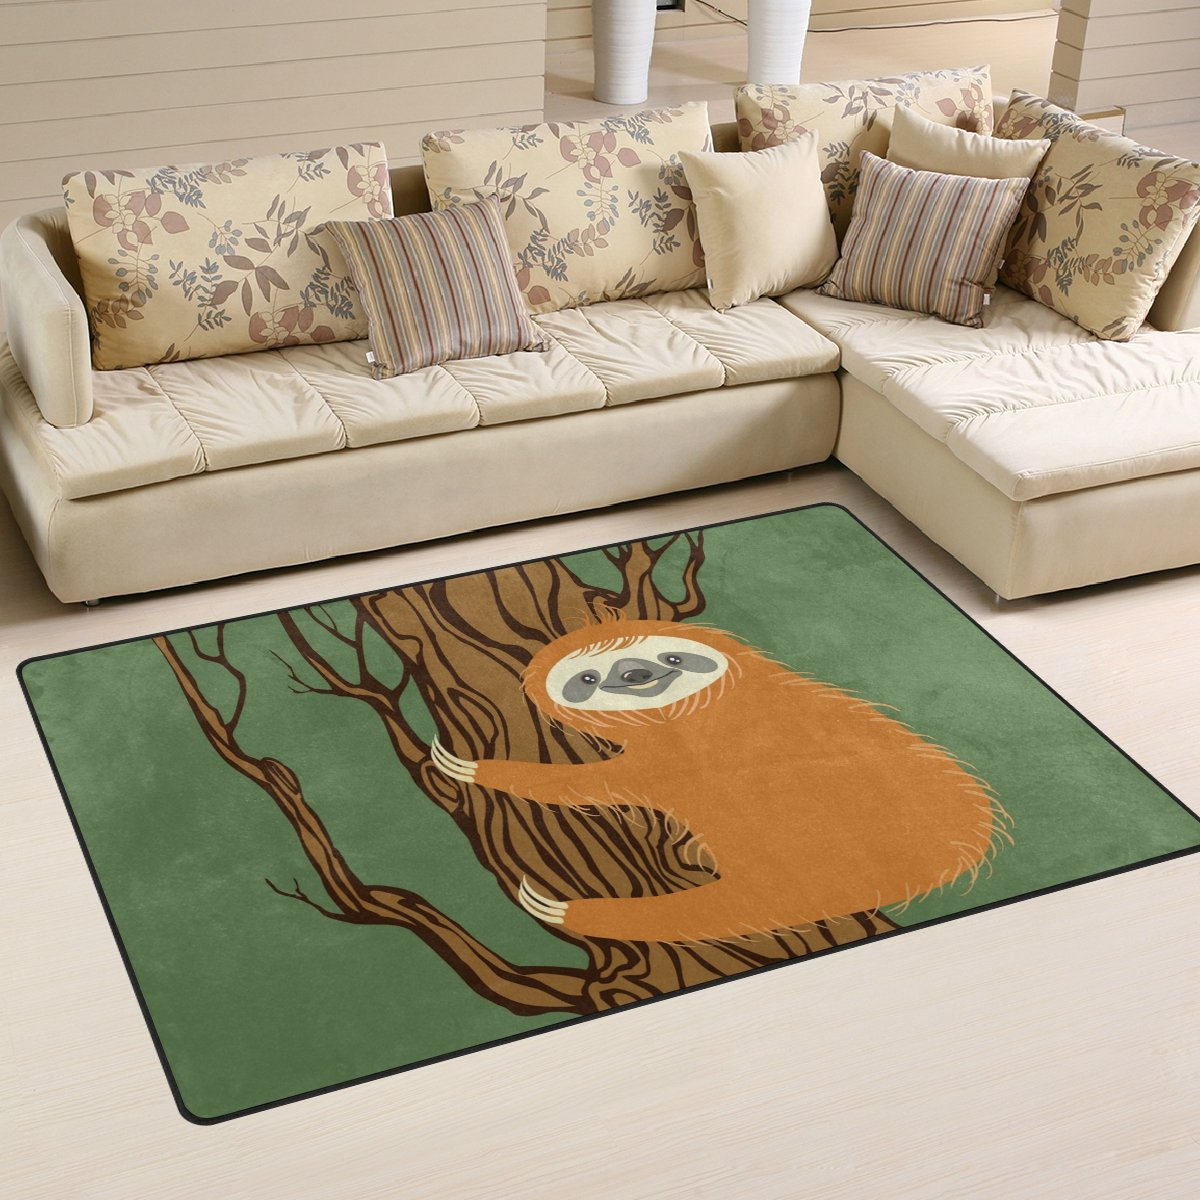 Yochoice Non-slip Area Rugs Home Decor, Cute Funny Cartoon Sloth Animal Floor Mat Living Room Bedroom Carpets Doormats 60 x 39 inches